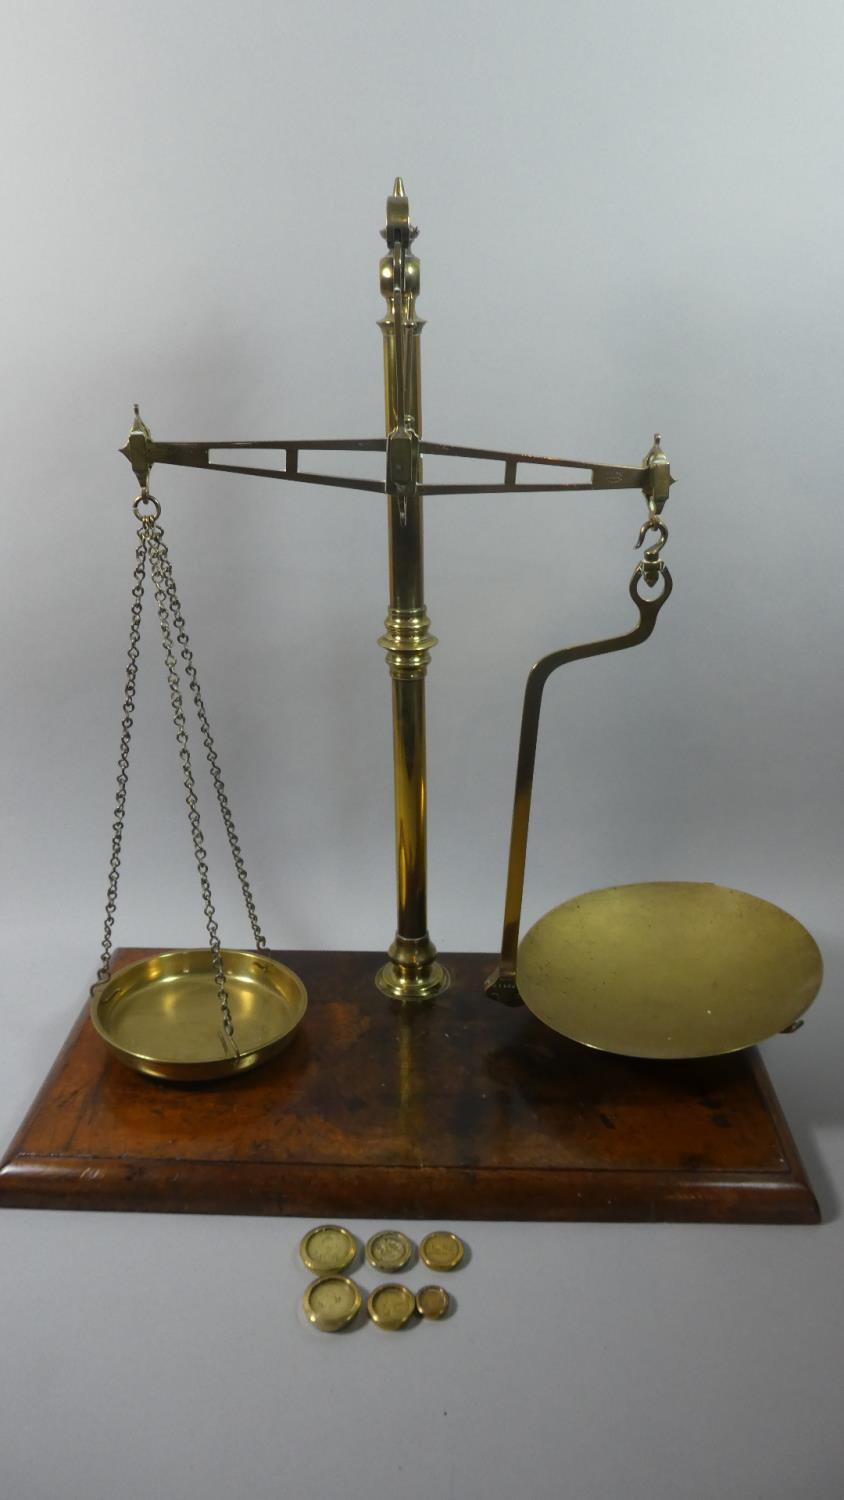 Lot 129 - A Late 19th Century Set of Brass Pan Scales with Weights on Rectangular Wooden Plinth Base, 56cm